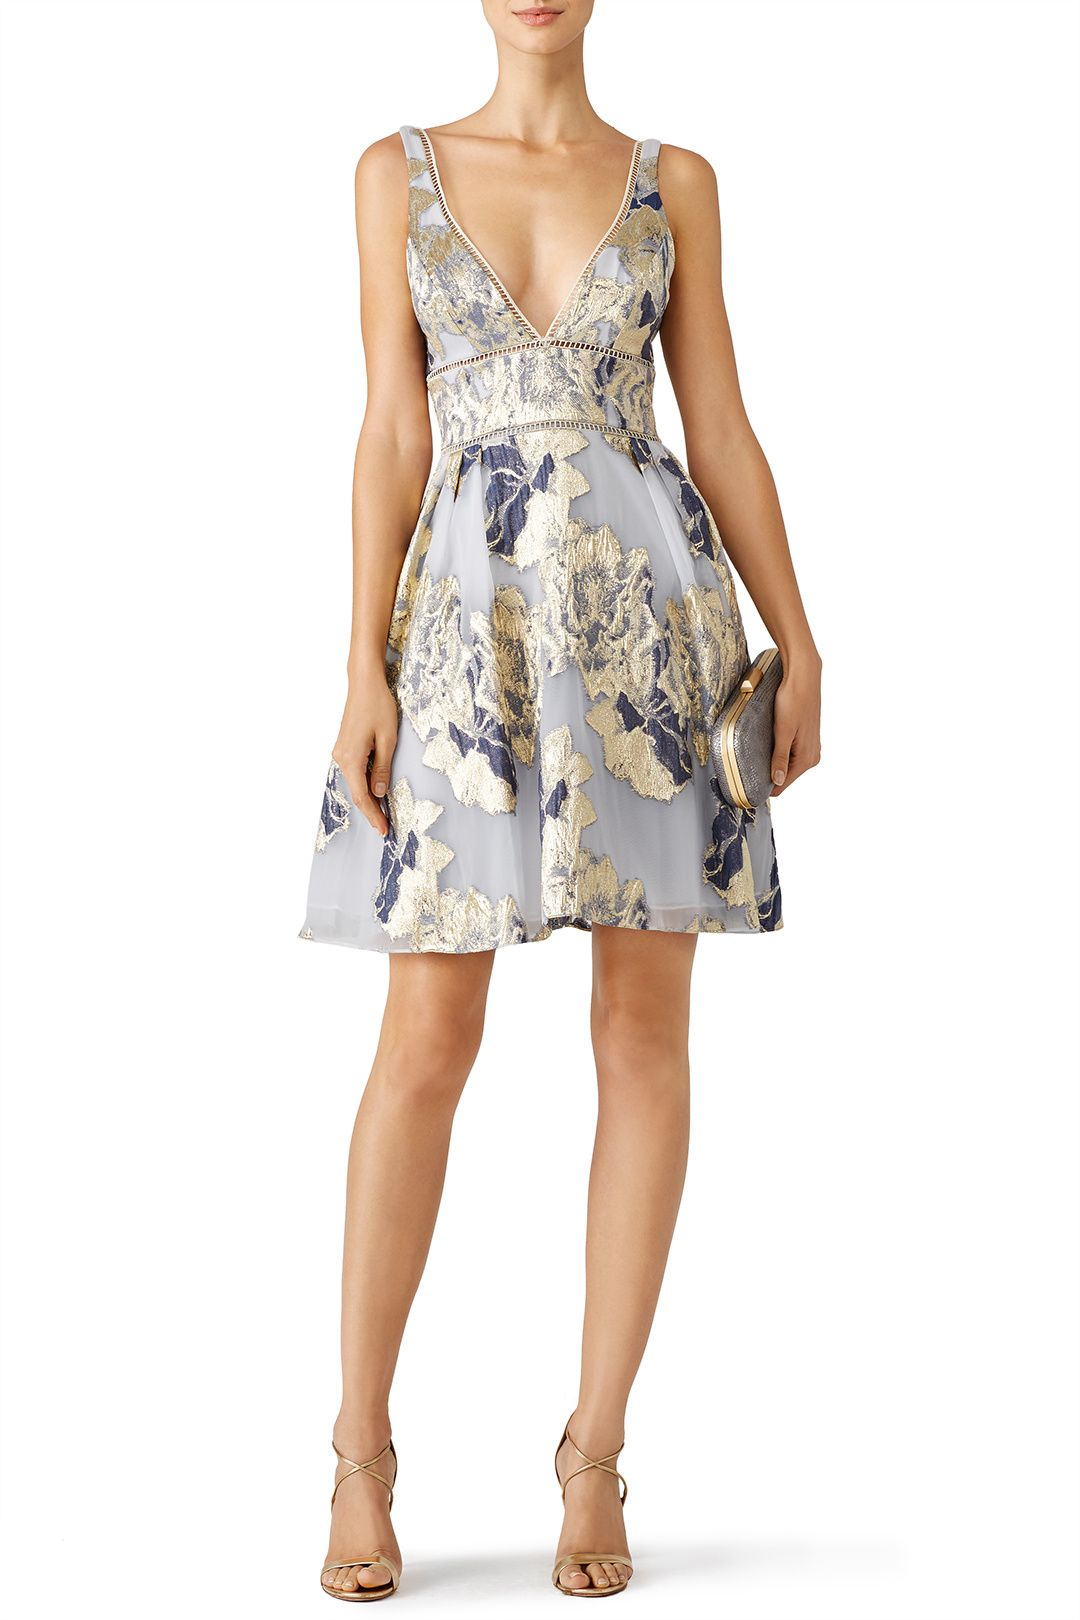 543d87bd5c Rent Metallic Floral Cocktail Dress by Marchesa Notte for $105 - $120 only  at Rent the Runway.